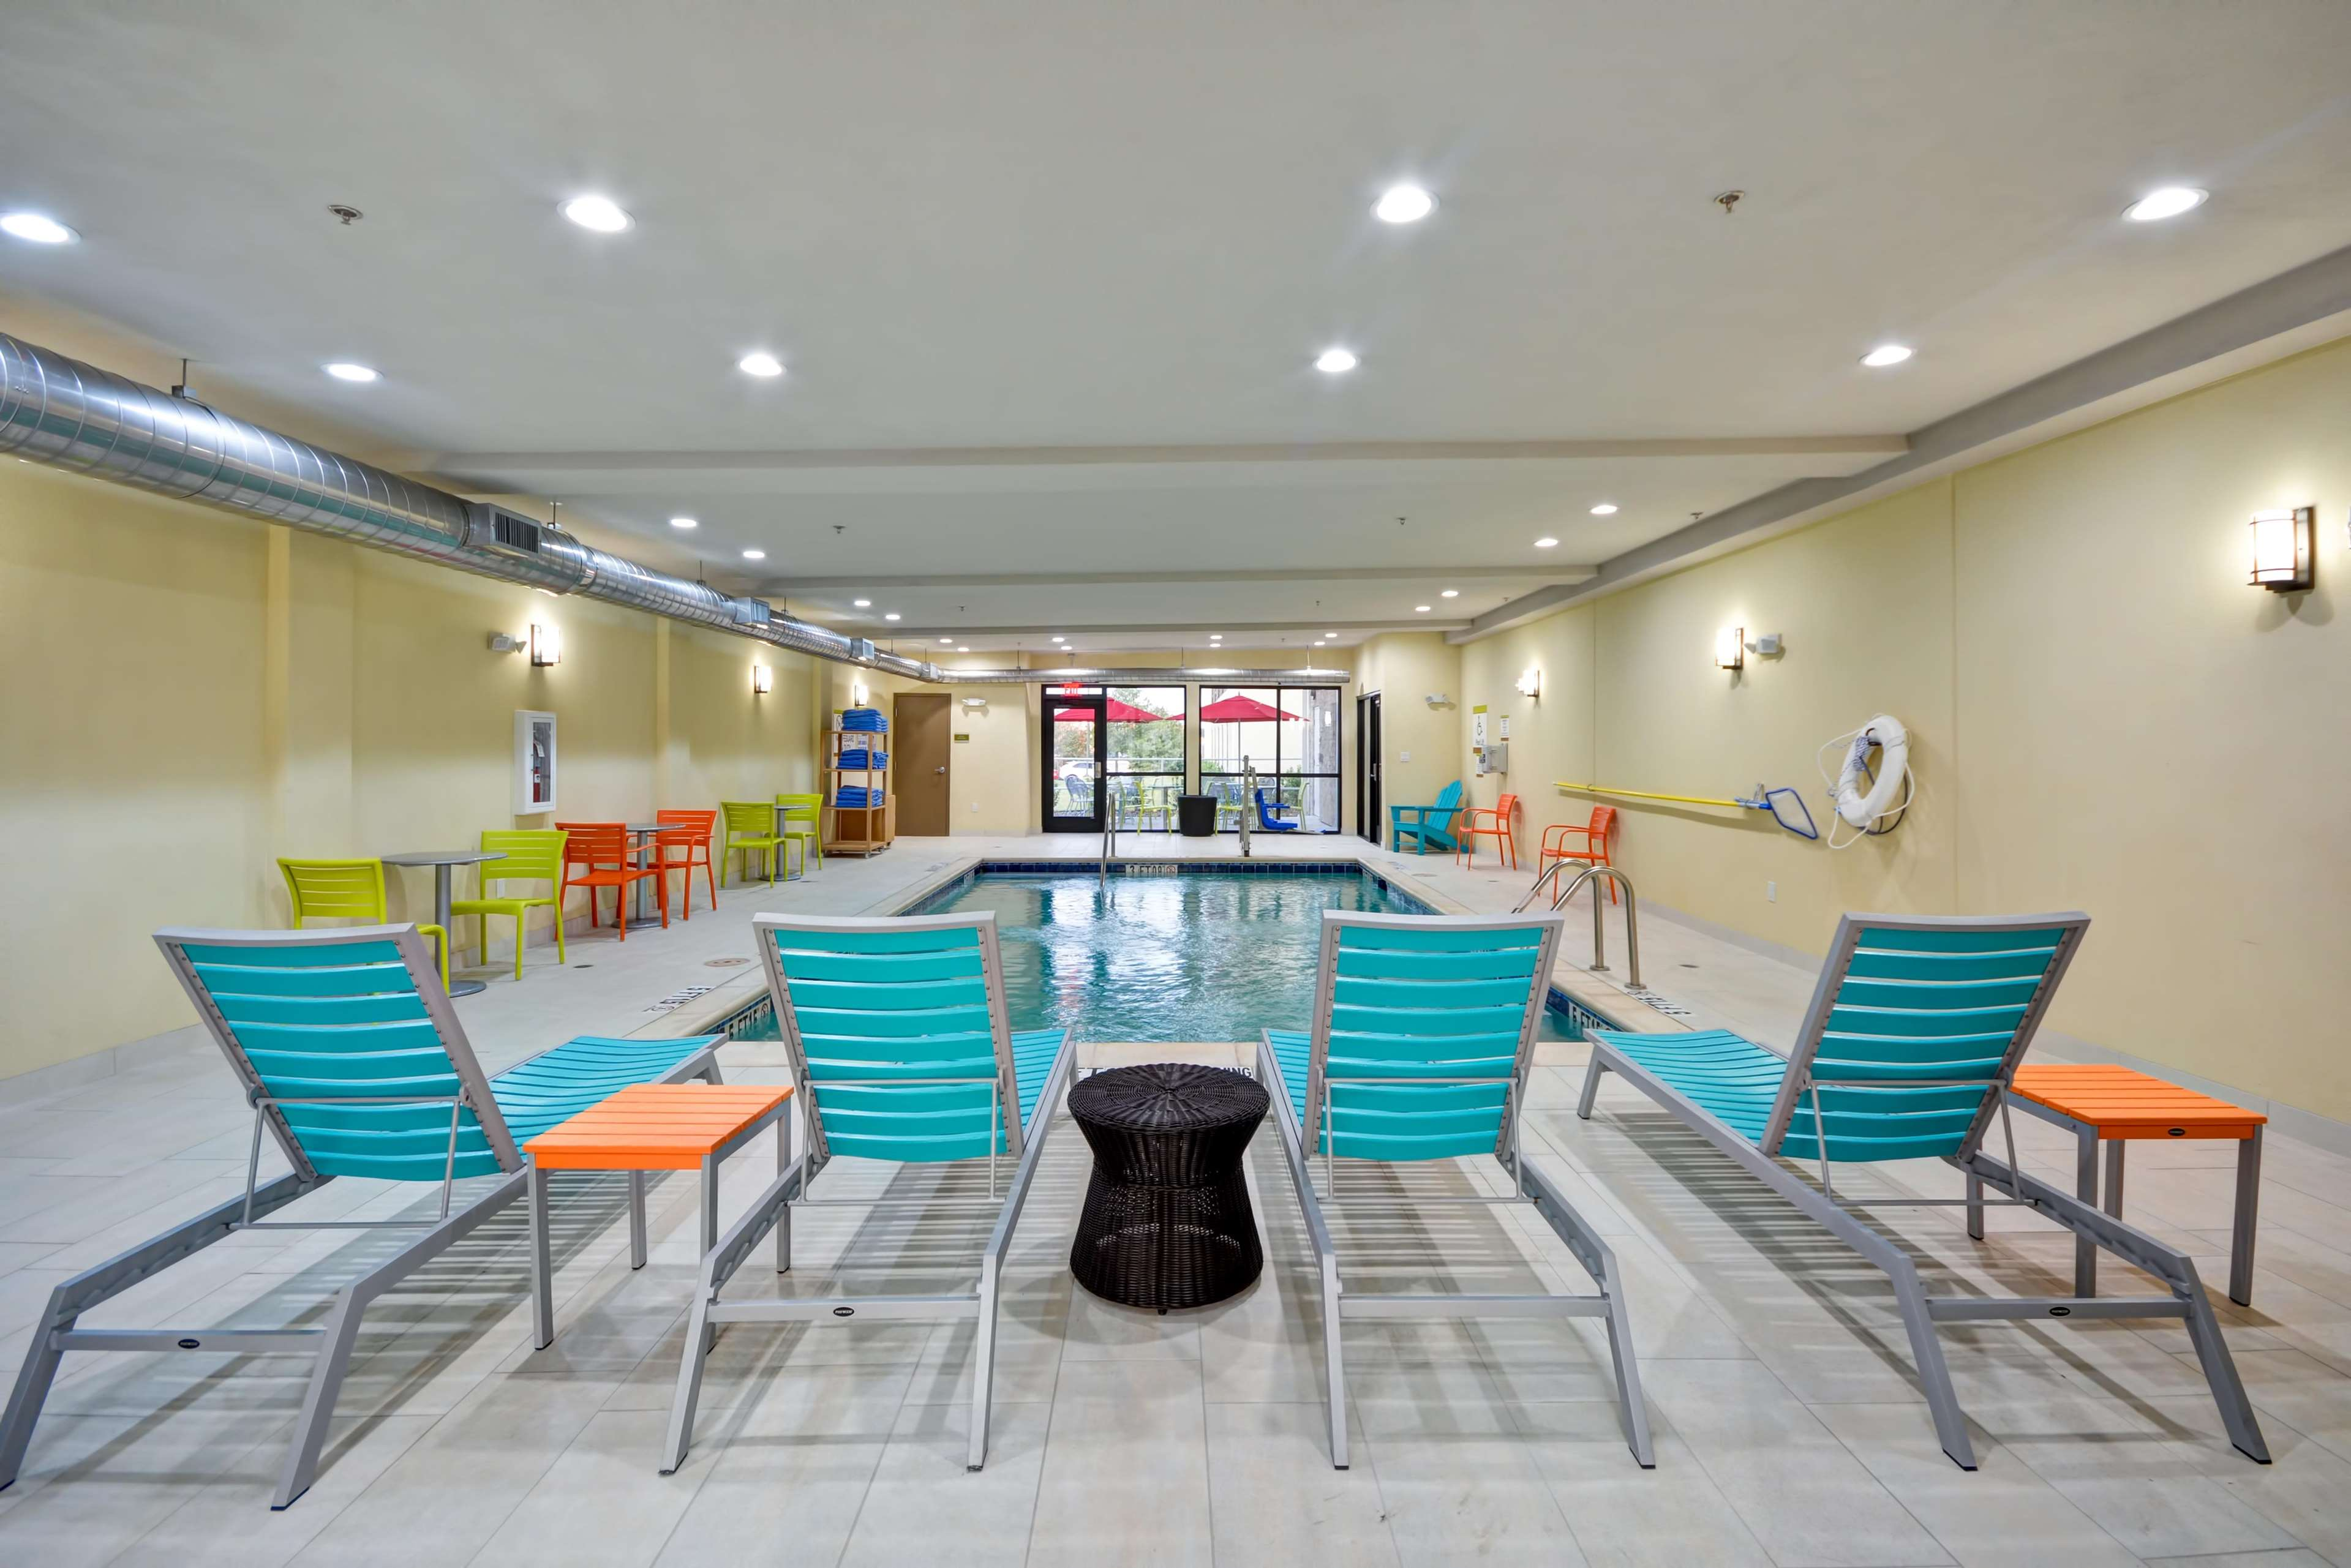 Home2 Suites by Hilton Fort Worth Southwest Cityview image 6